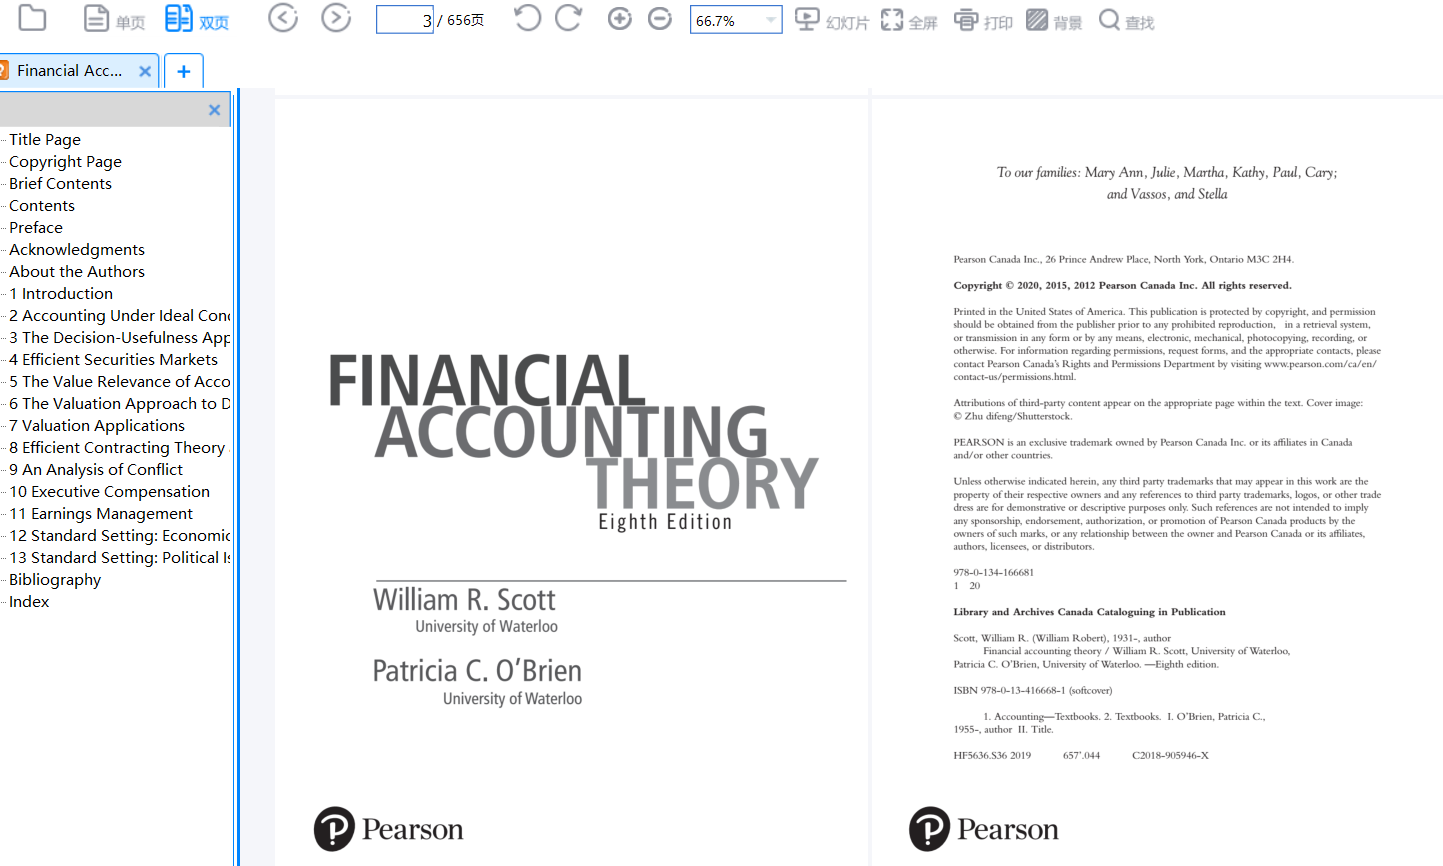 Financial Accounting Theory 8th Edition by William R. Scott的图片 2